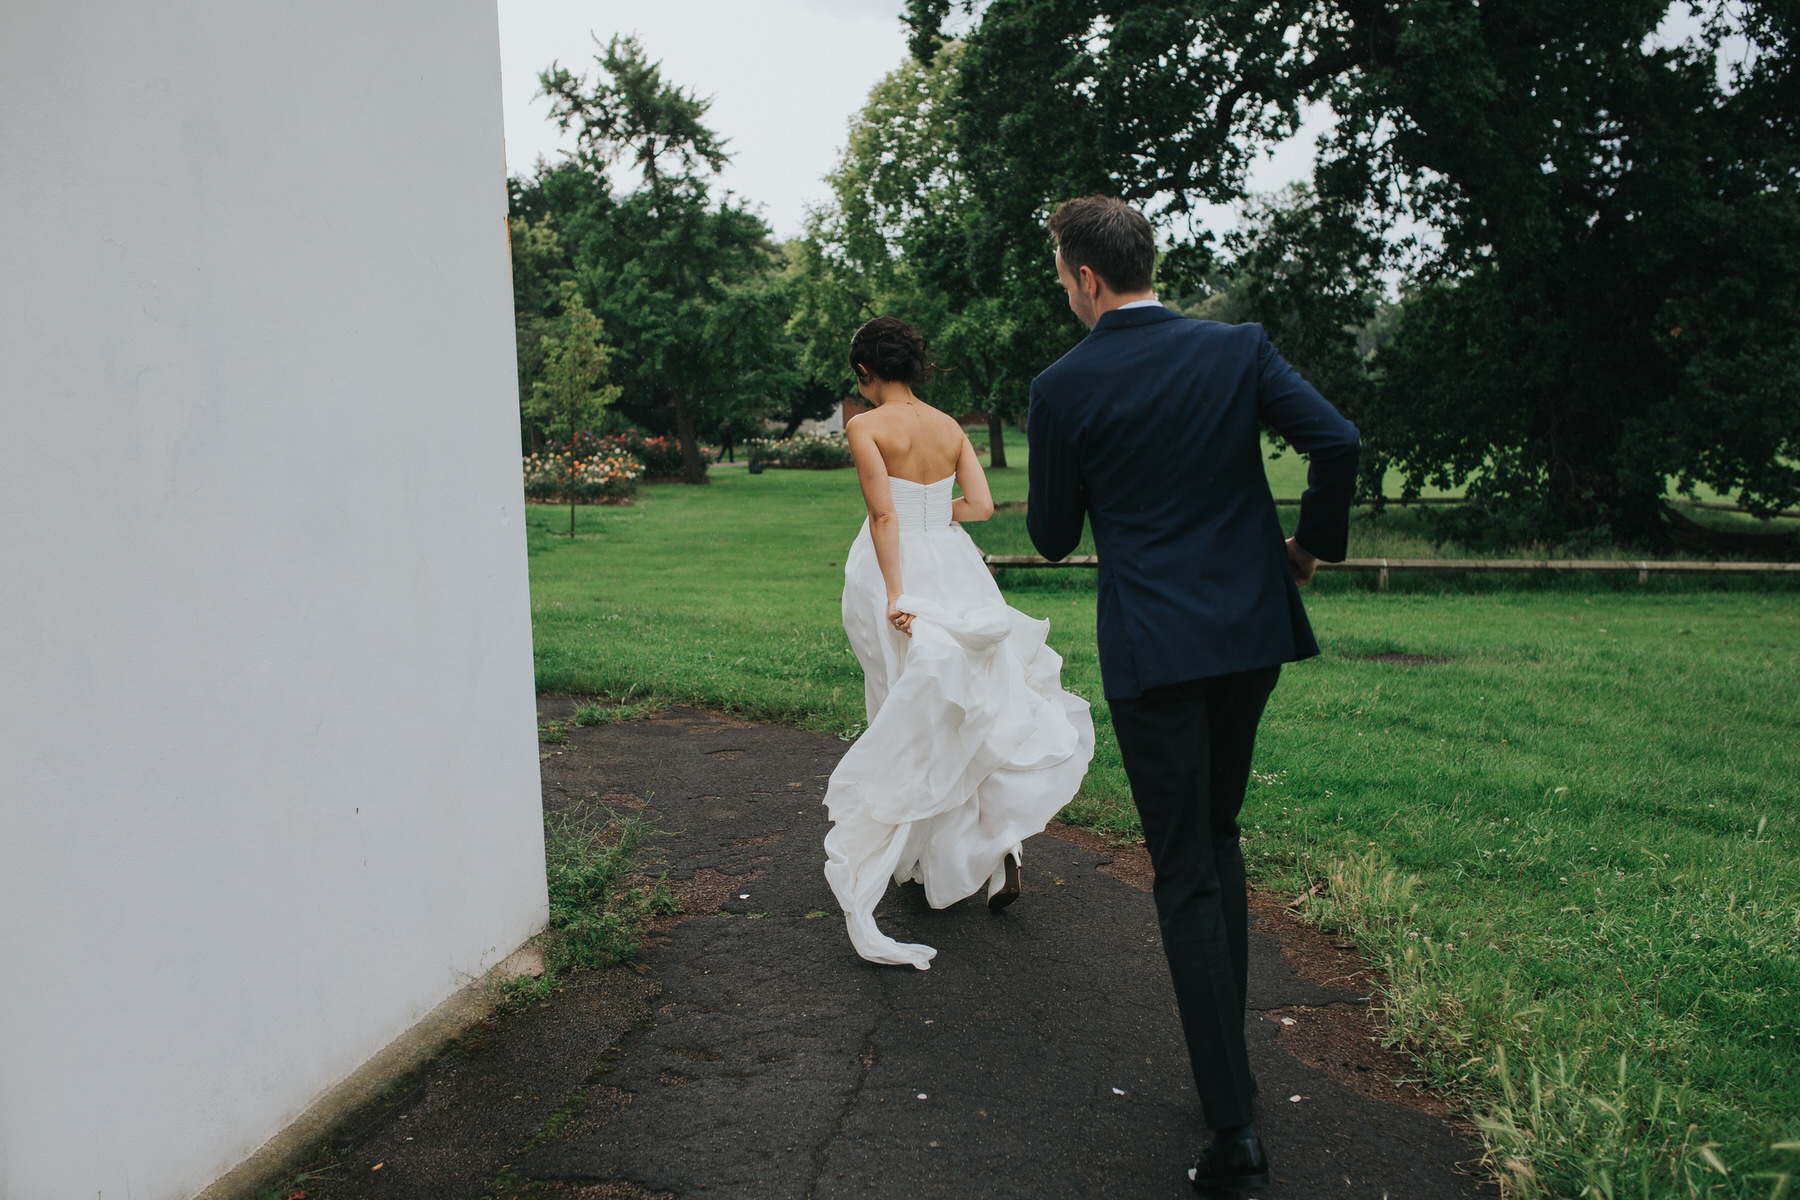 Belair Park bride groom running from rain.jpg